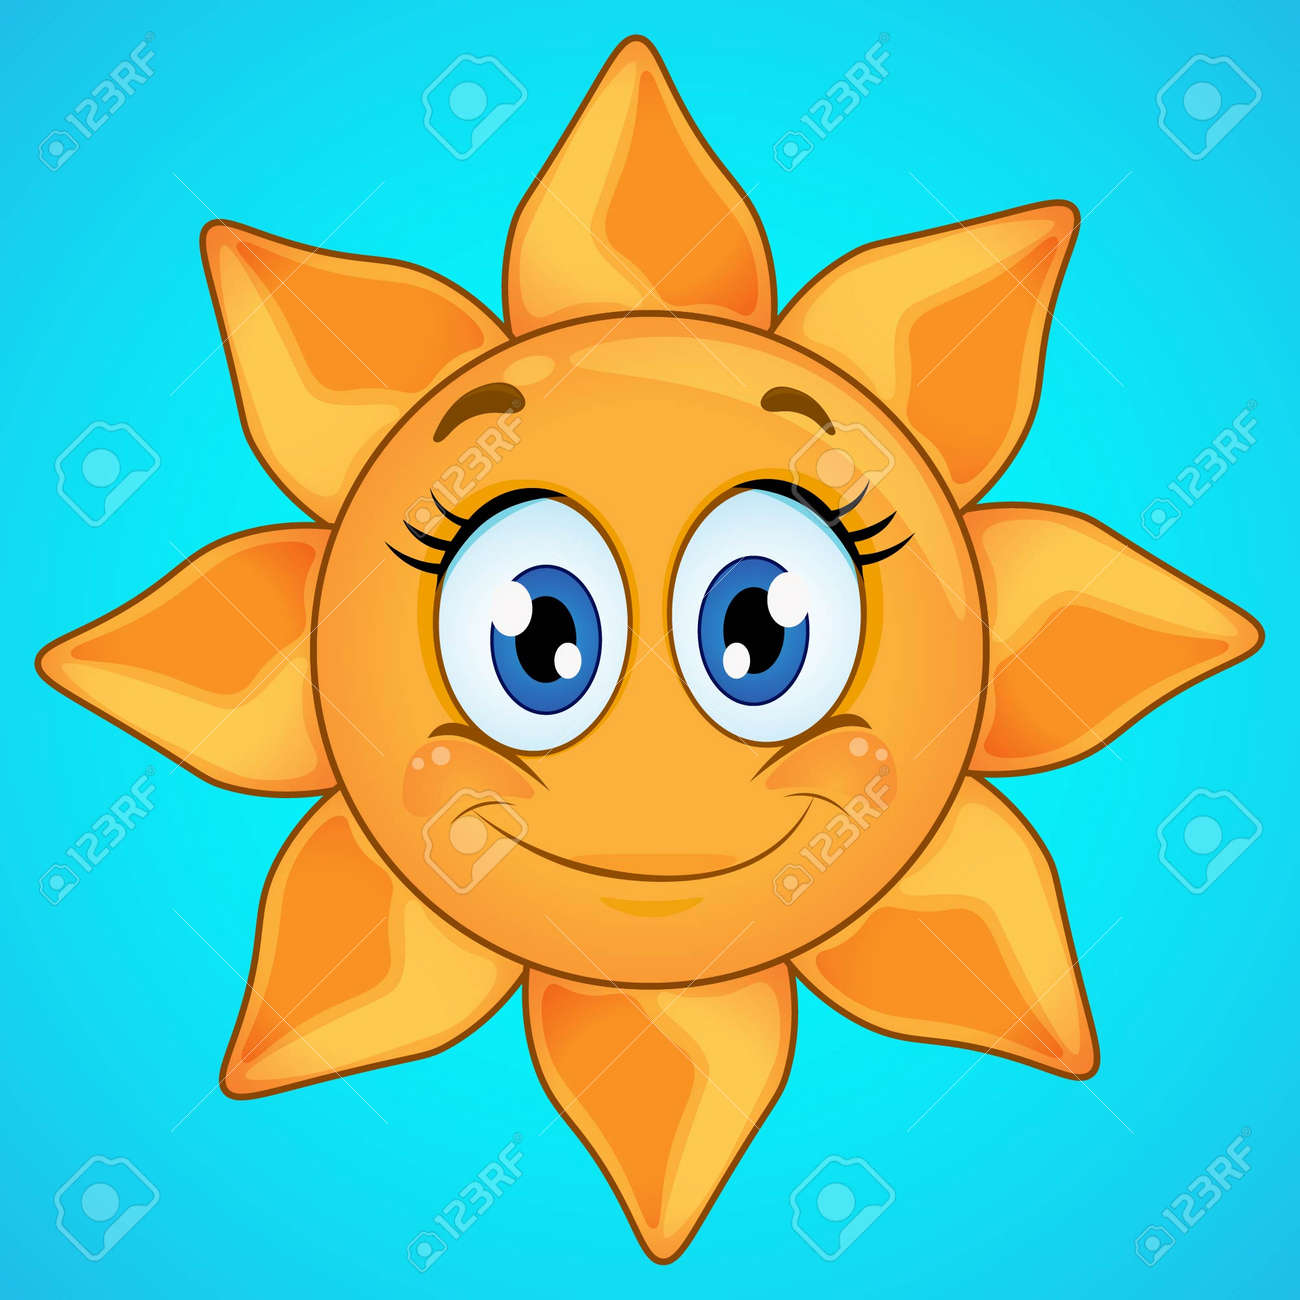 Cartoon smiling sun icon isolated on blue background. Cute sun icon. - 170322541